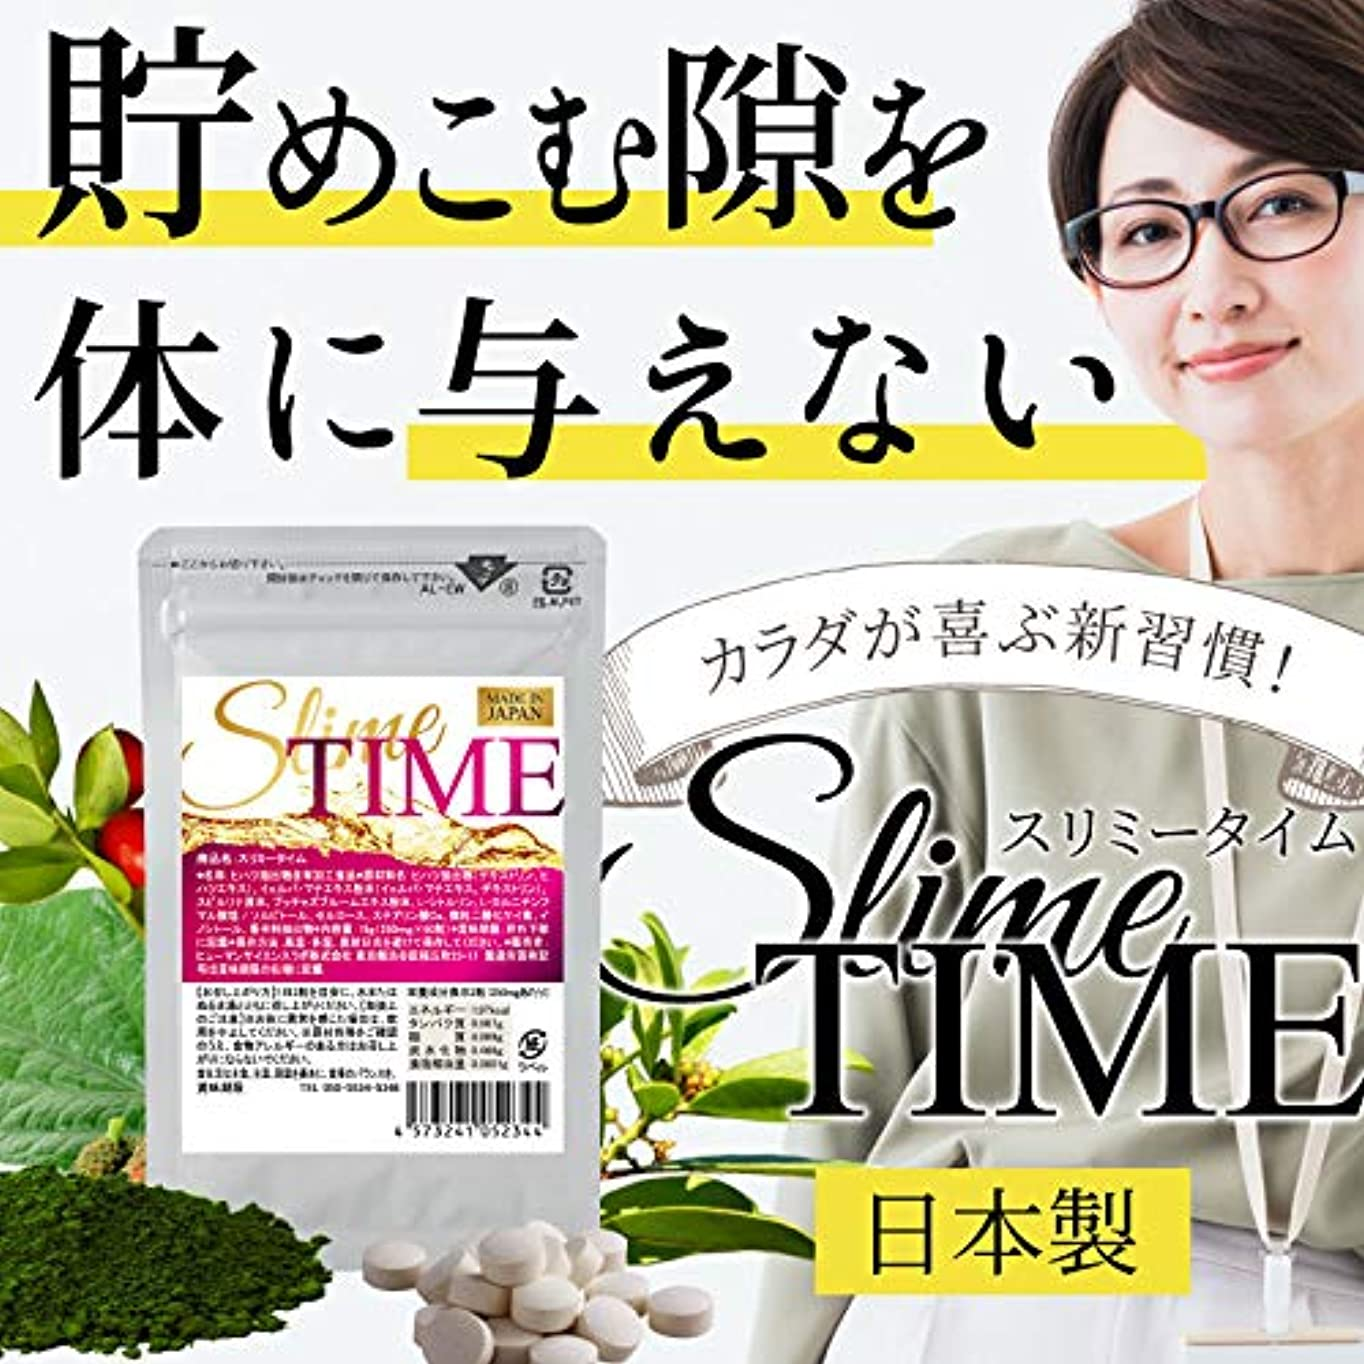 SLIME TIME~スリミータイム~ ダイエット ダイエットサプリ 送料無料